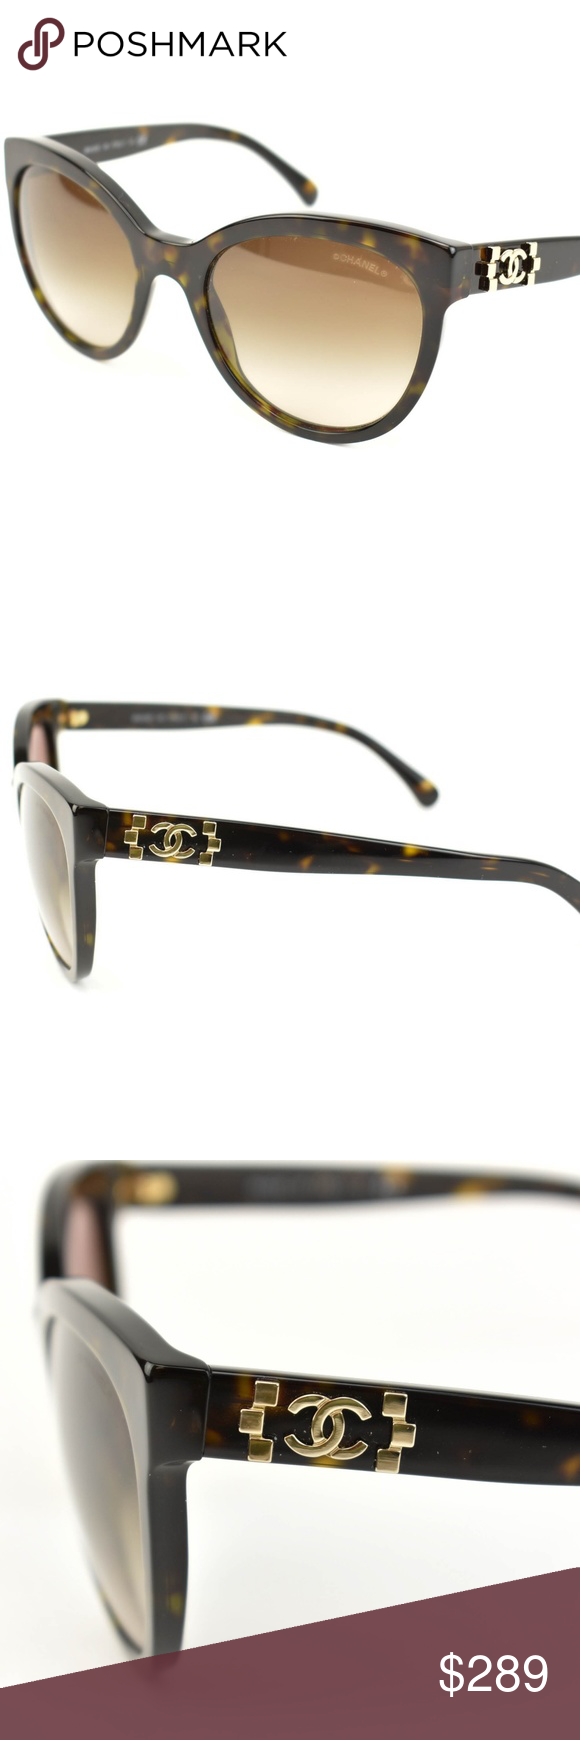 Chanel Tortoise Brown Cc Logo Sunglasses Ah Please Remember That All Glasses Must Be Adjusted And Or Tighten Sunglasses Logo Brown Sunglasses Sunglasses